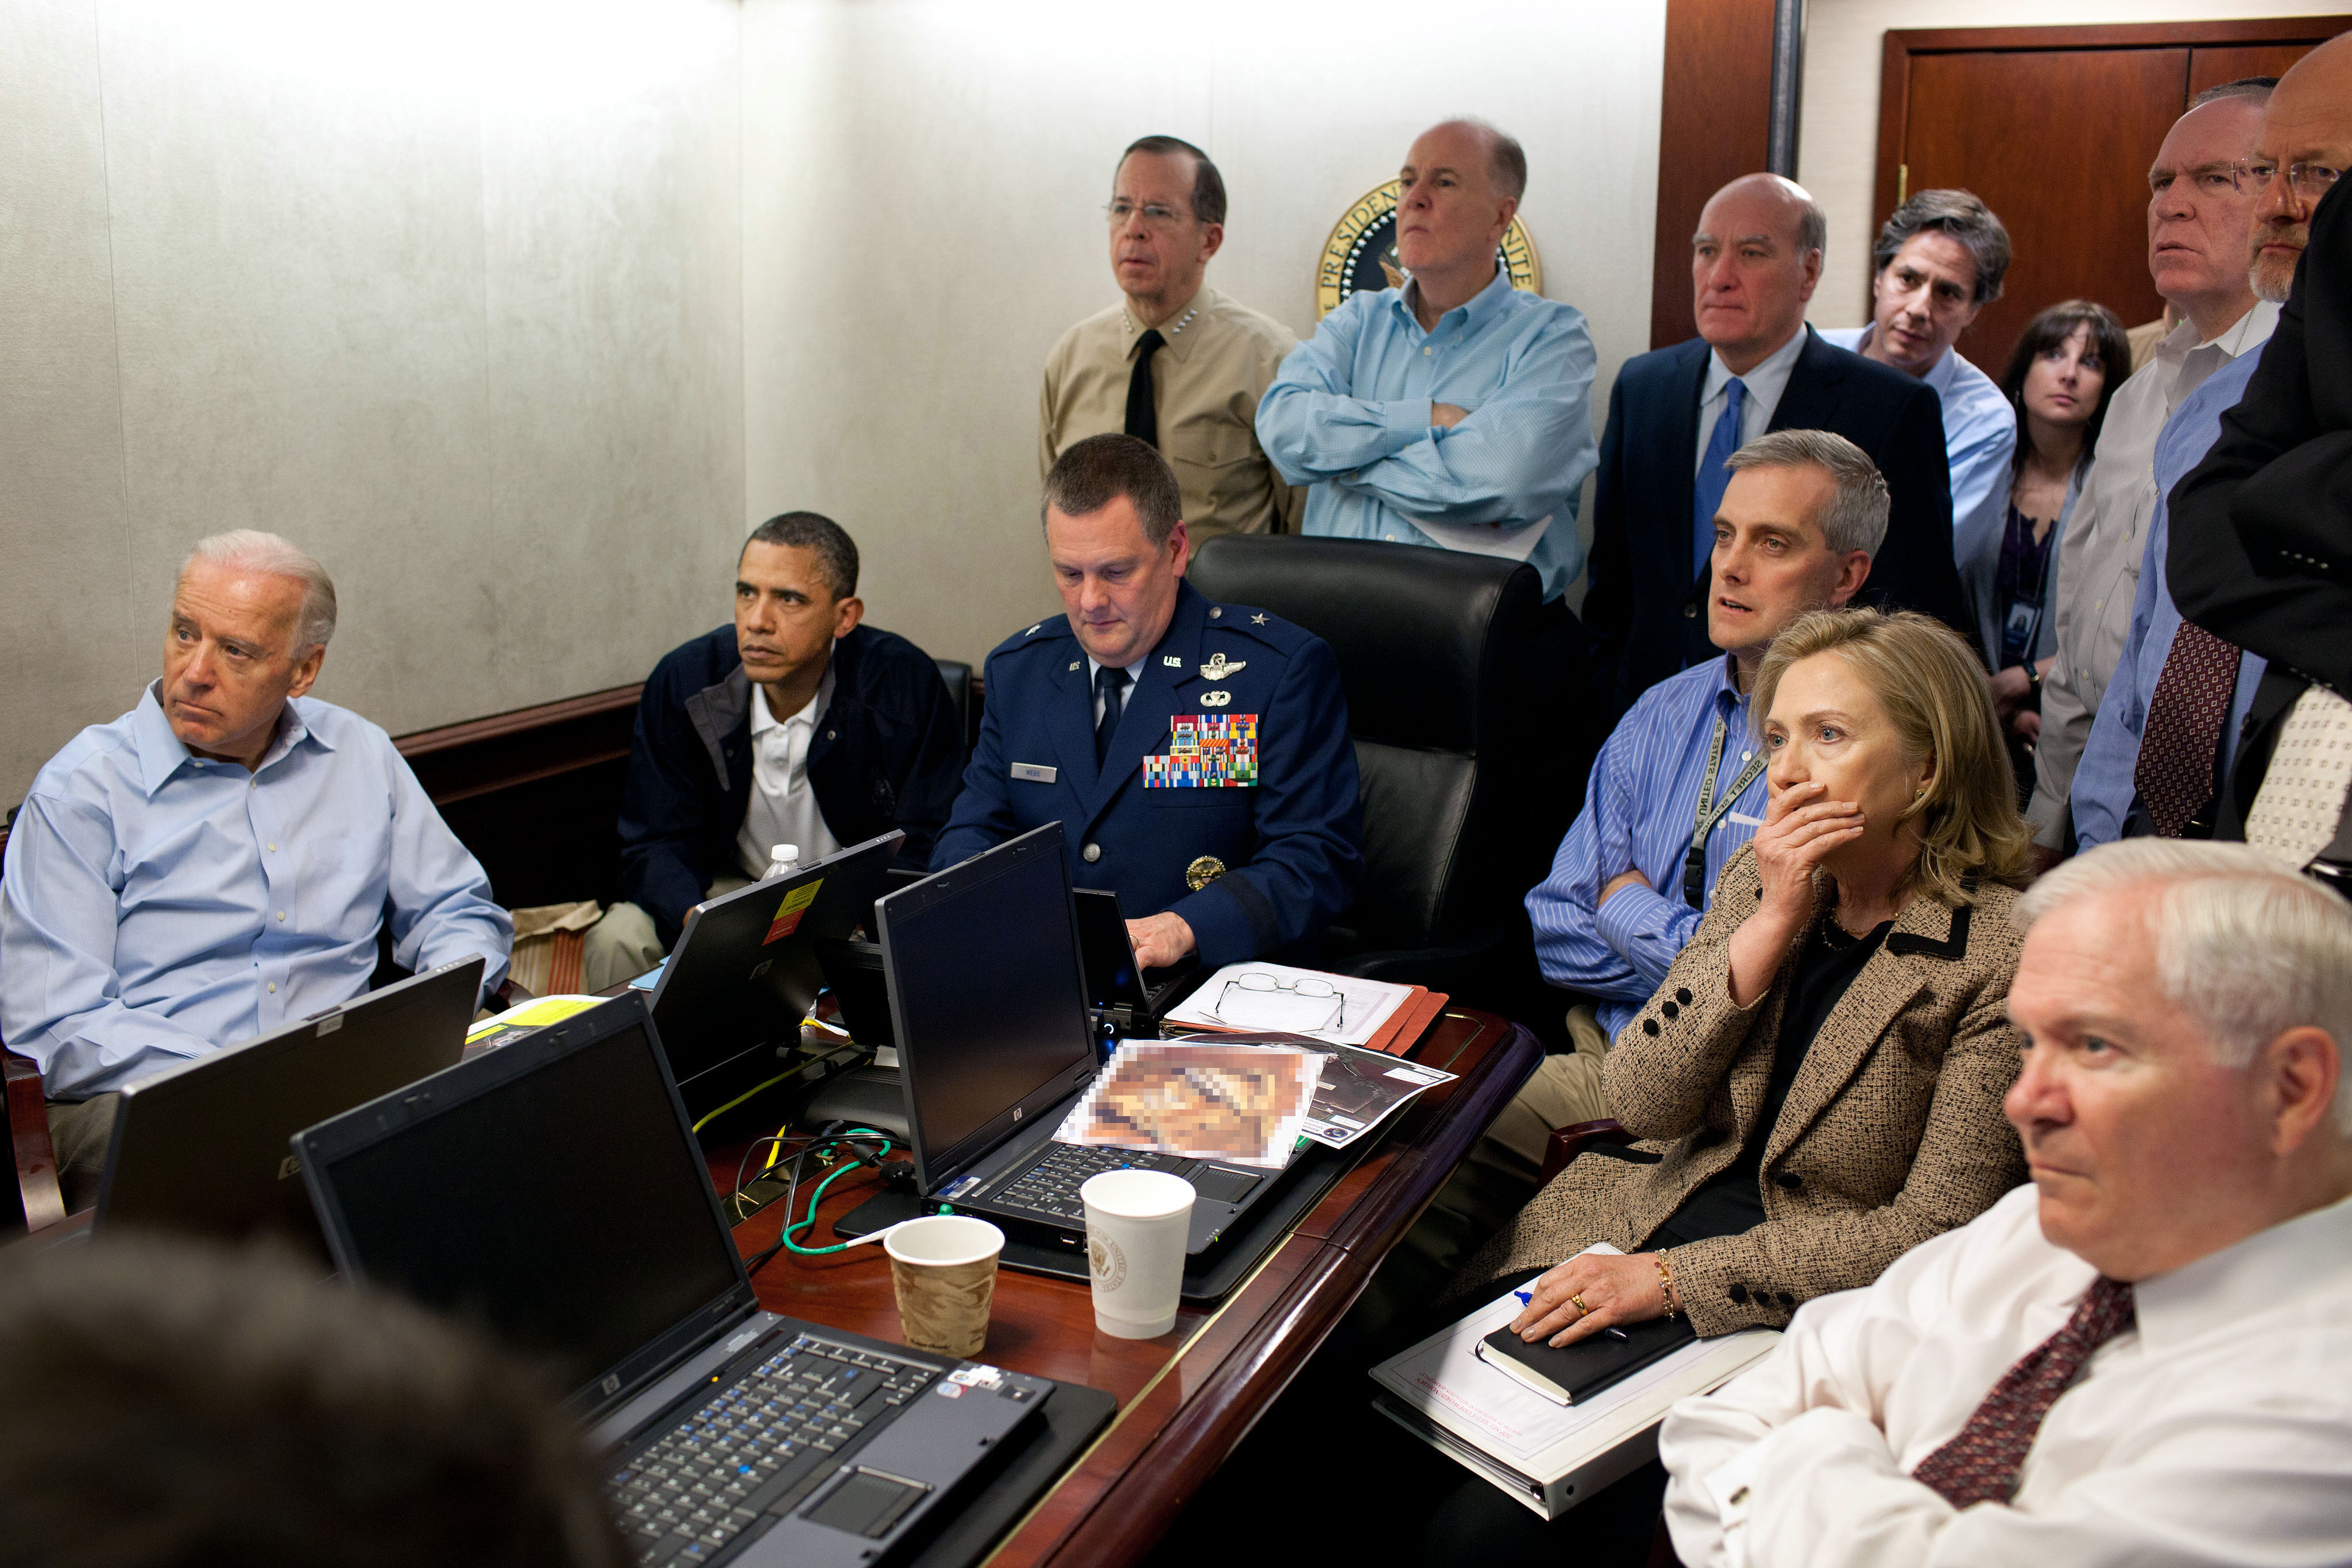 Obama_and_Biden_await_updates_on_bin_Laden.jpg